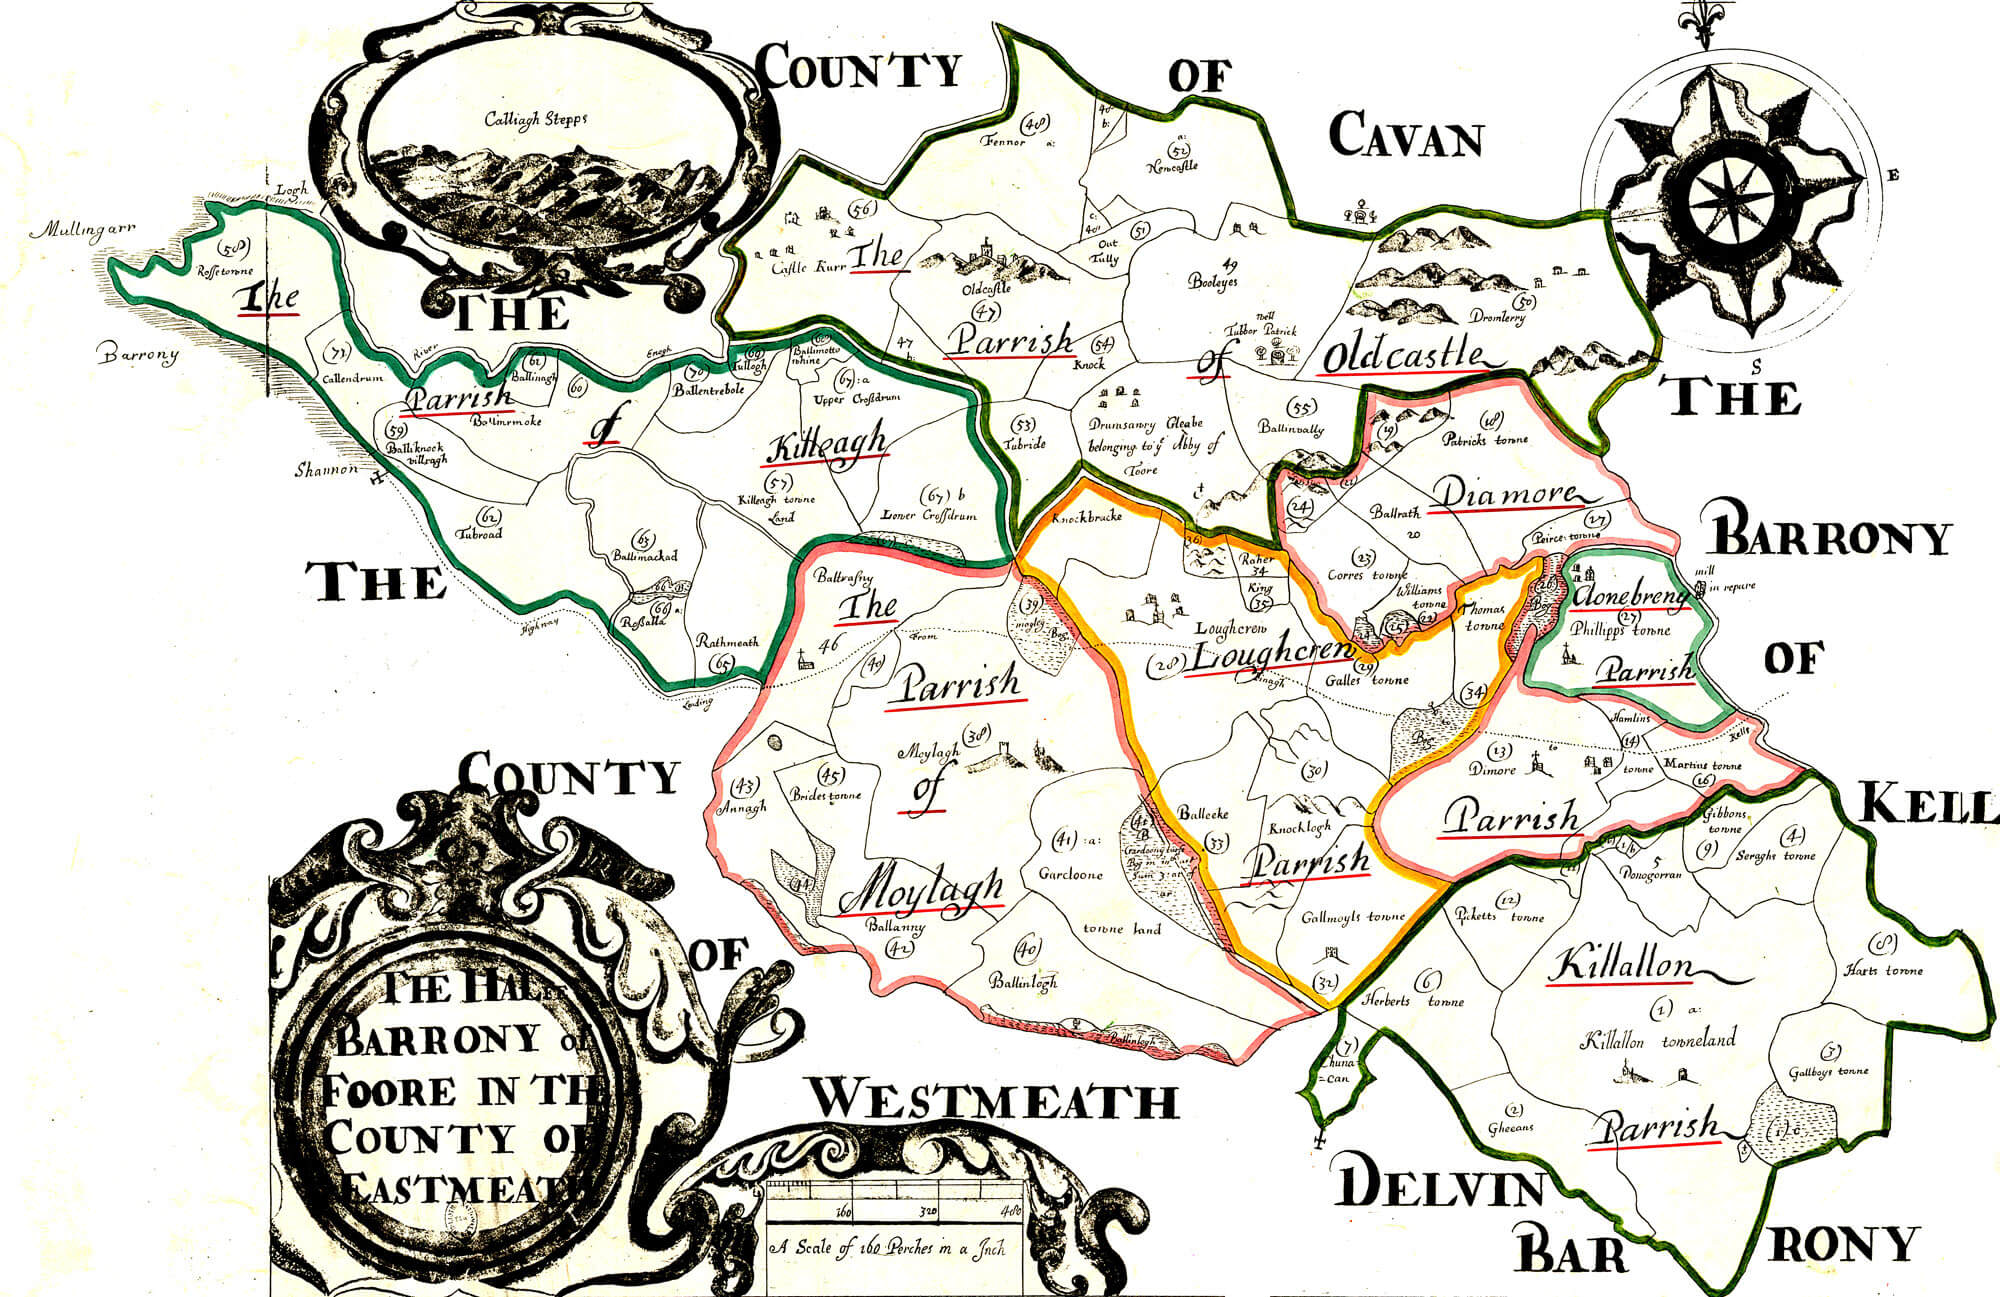 Blank Map Of Ireland 32 Counties.Ireland Barony Maps County Meath L Brown Collection